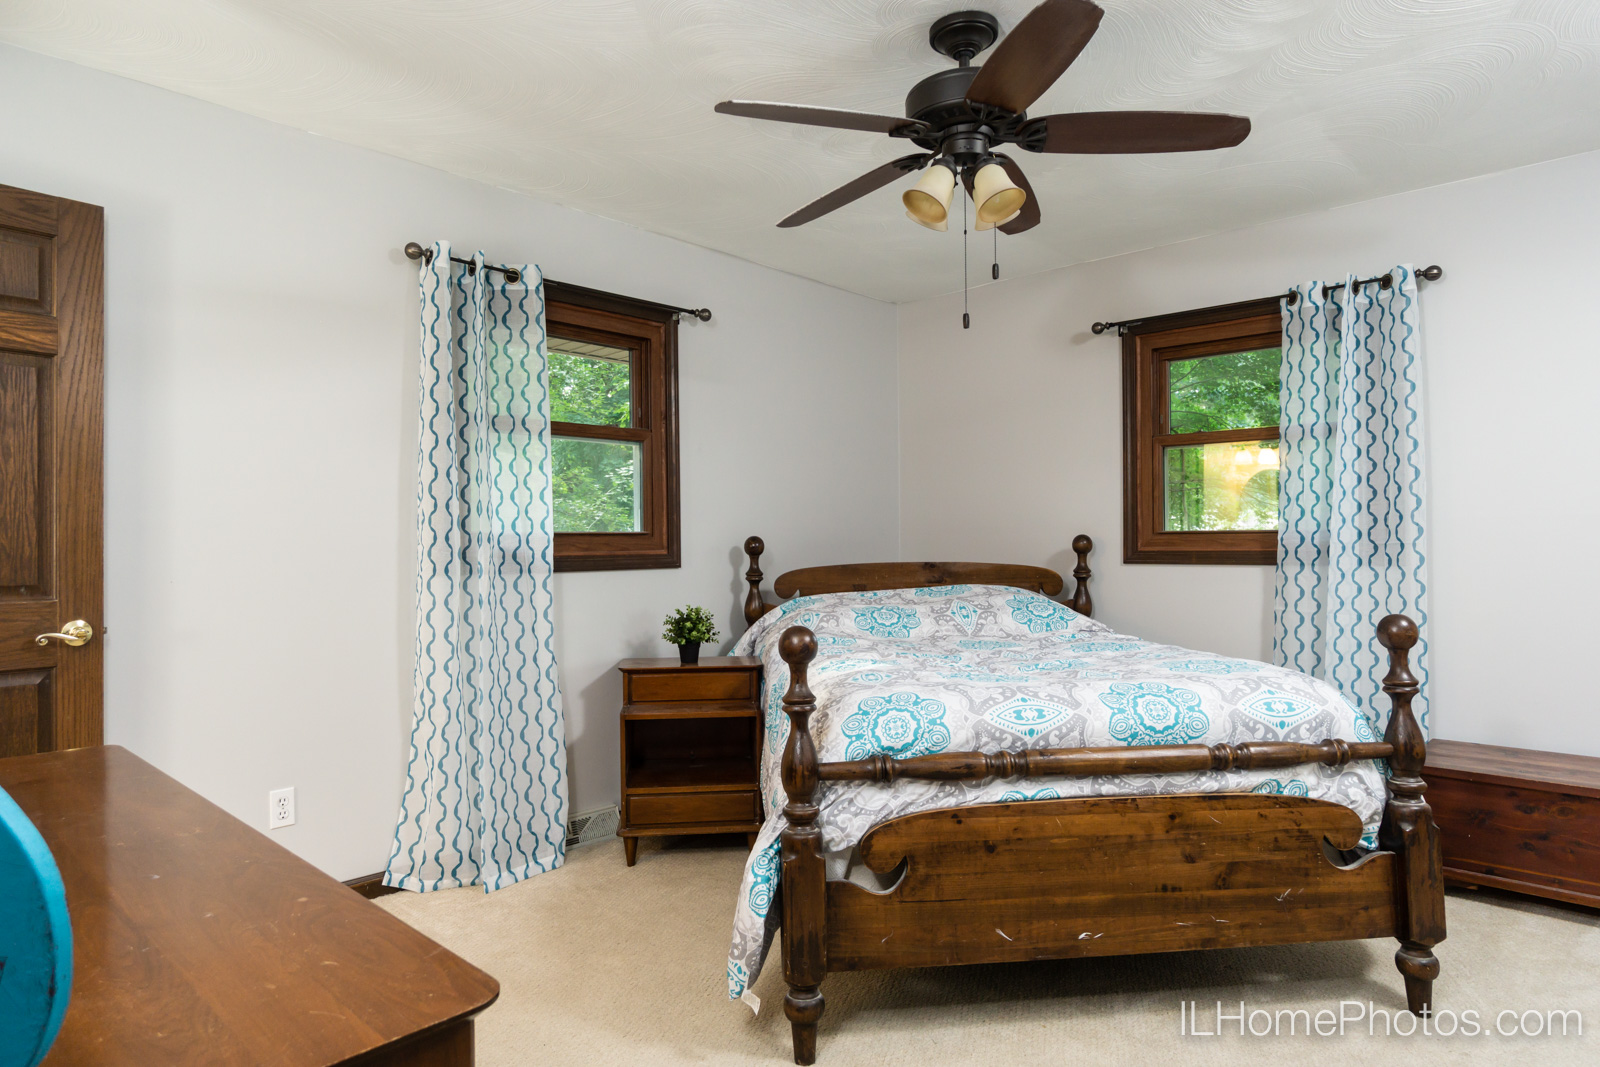 Interior master bedroom photograph for real estate in Sherman, IL :: Illinois Home Photography by Michael Gowin, Lincoln, IL